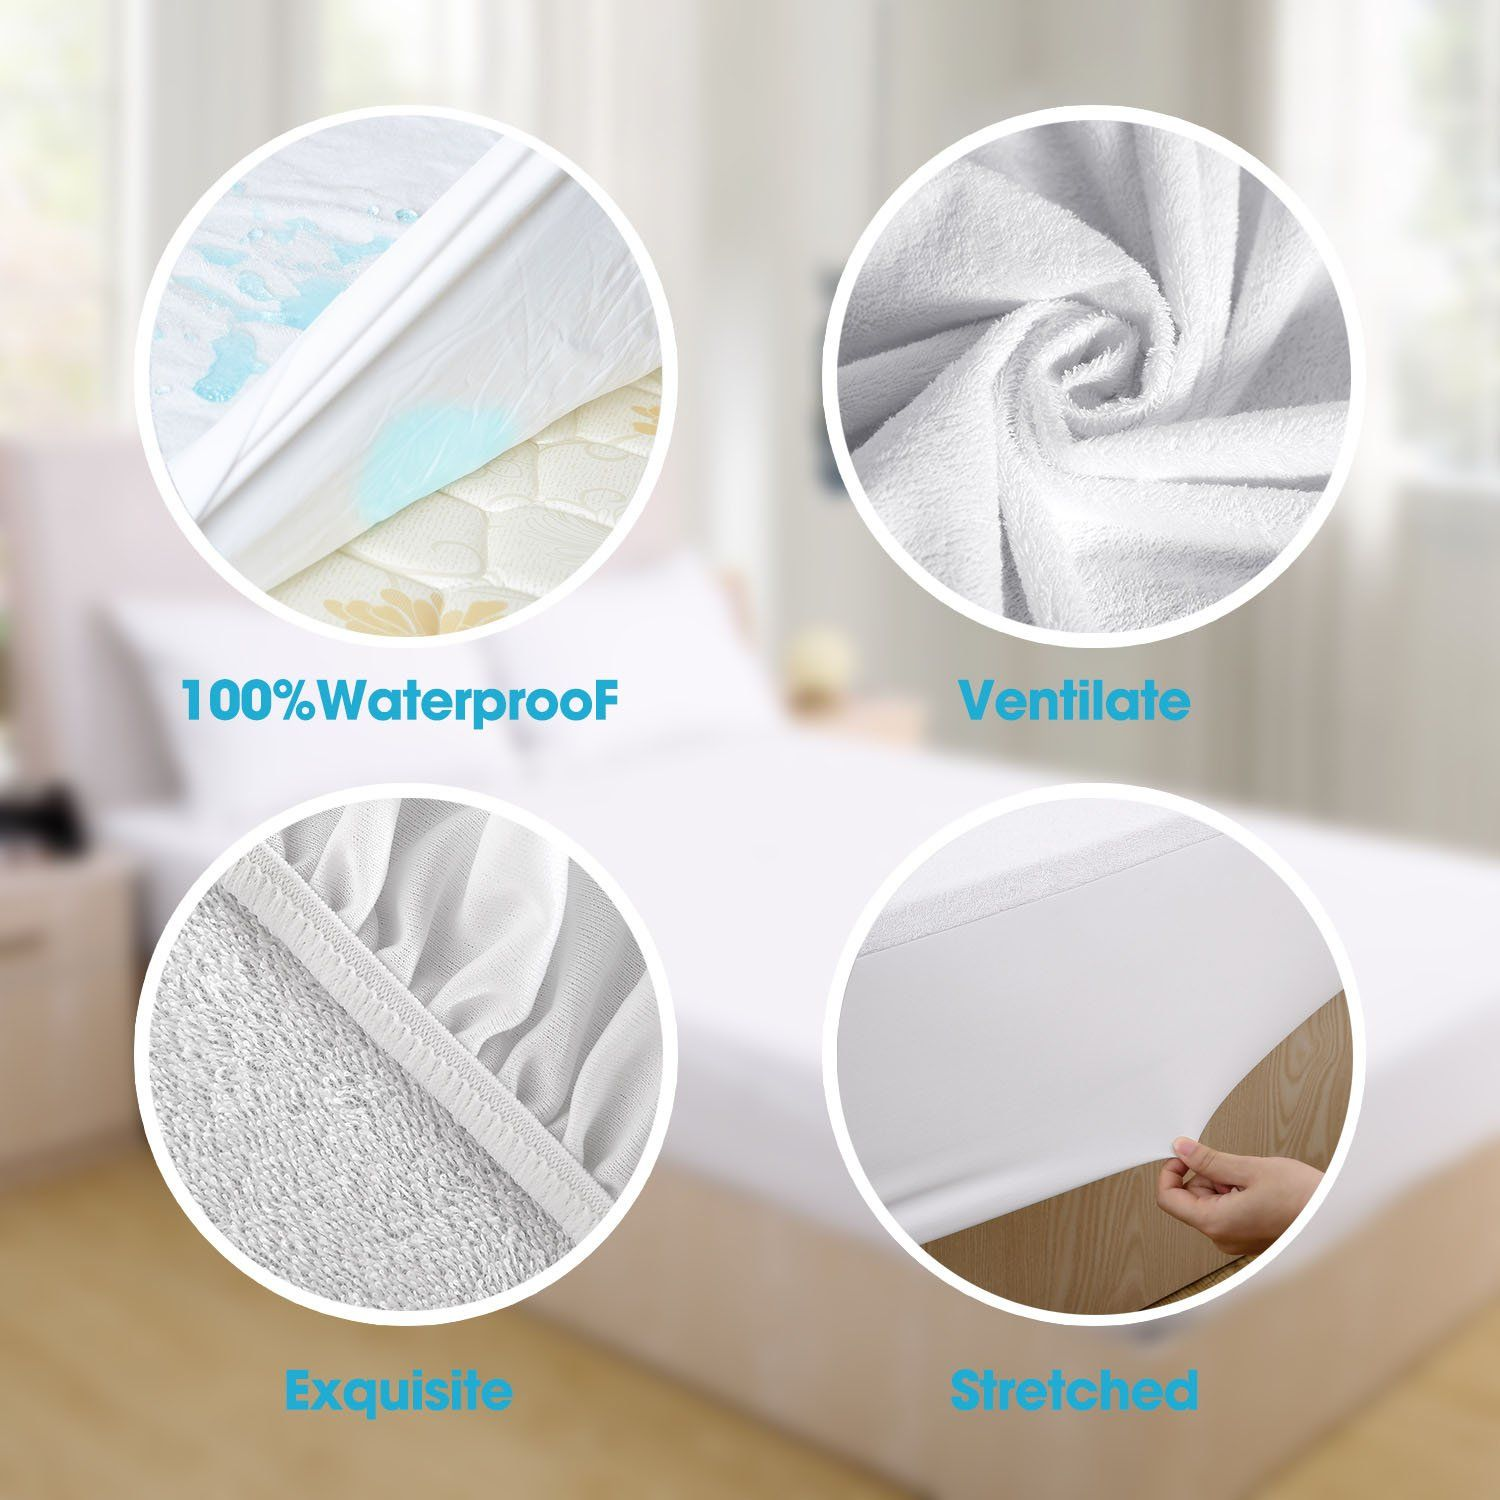 Bed Bug Proof Cover Deconovo Queen Size Mattress Protector Terry Surface Bed Bug Proof